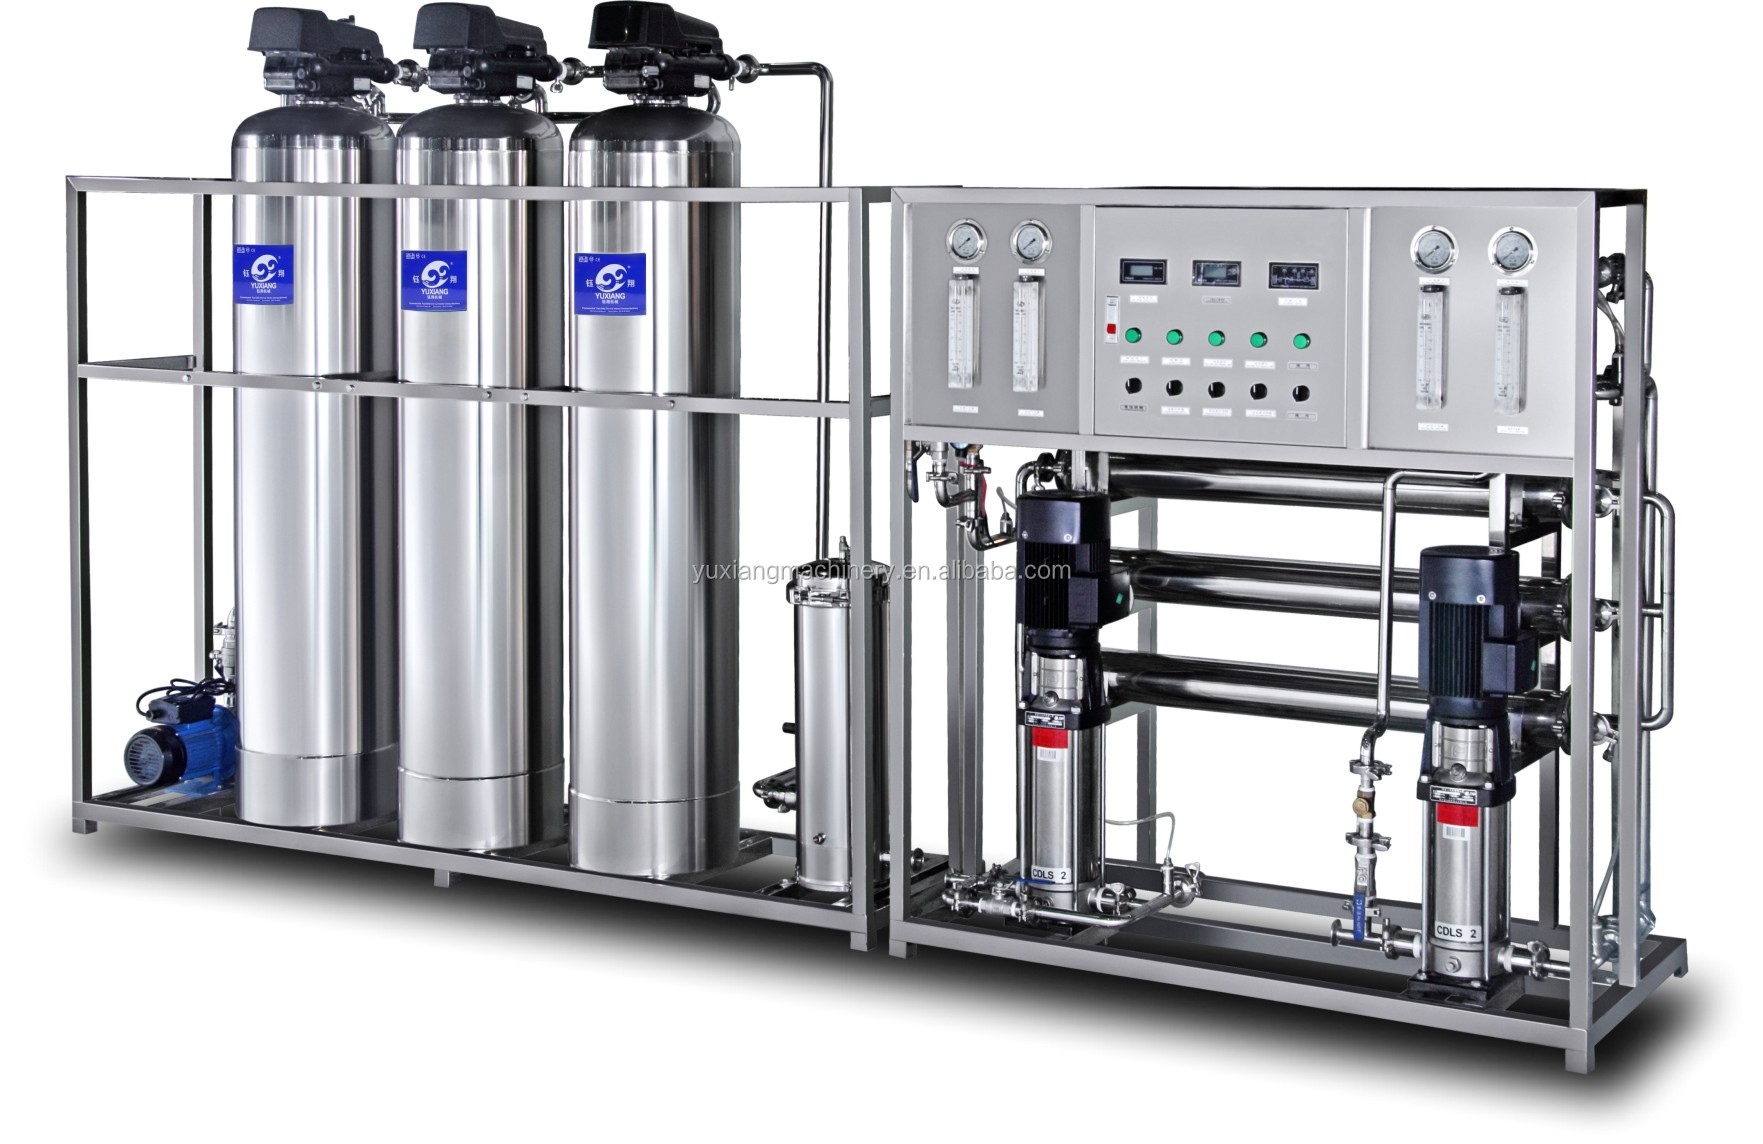 Ro water purifier machine/water treatment/industry water filter